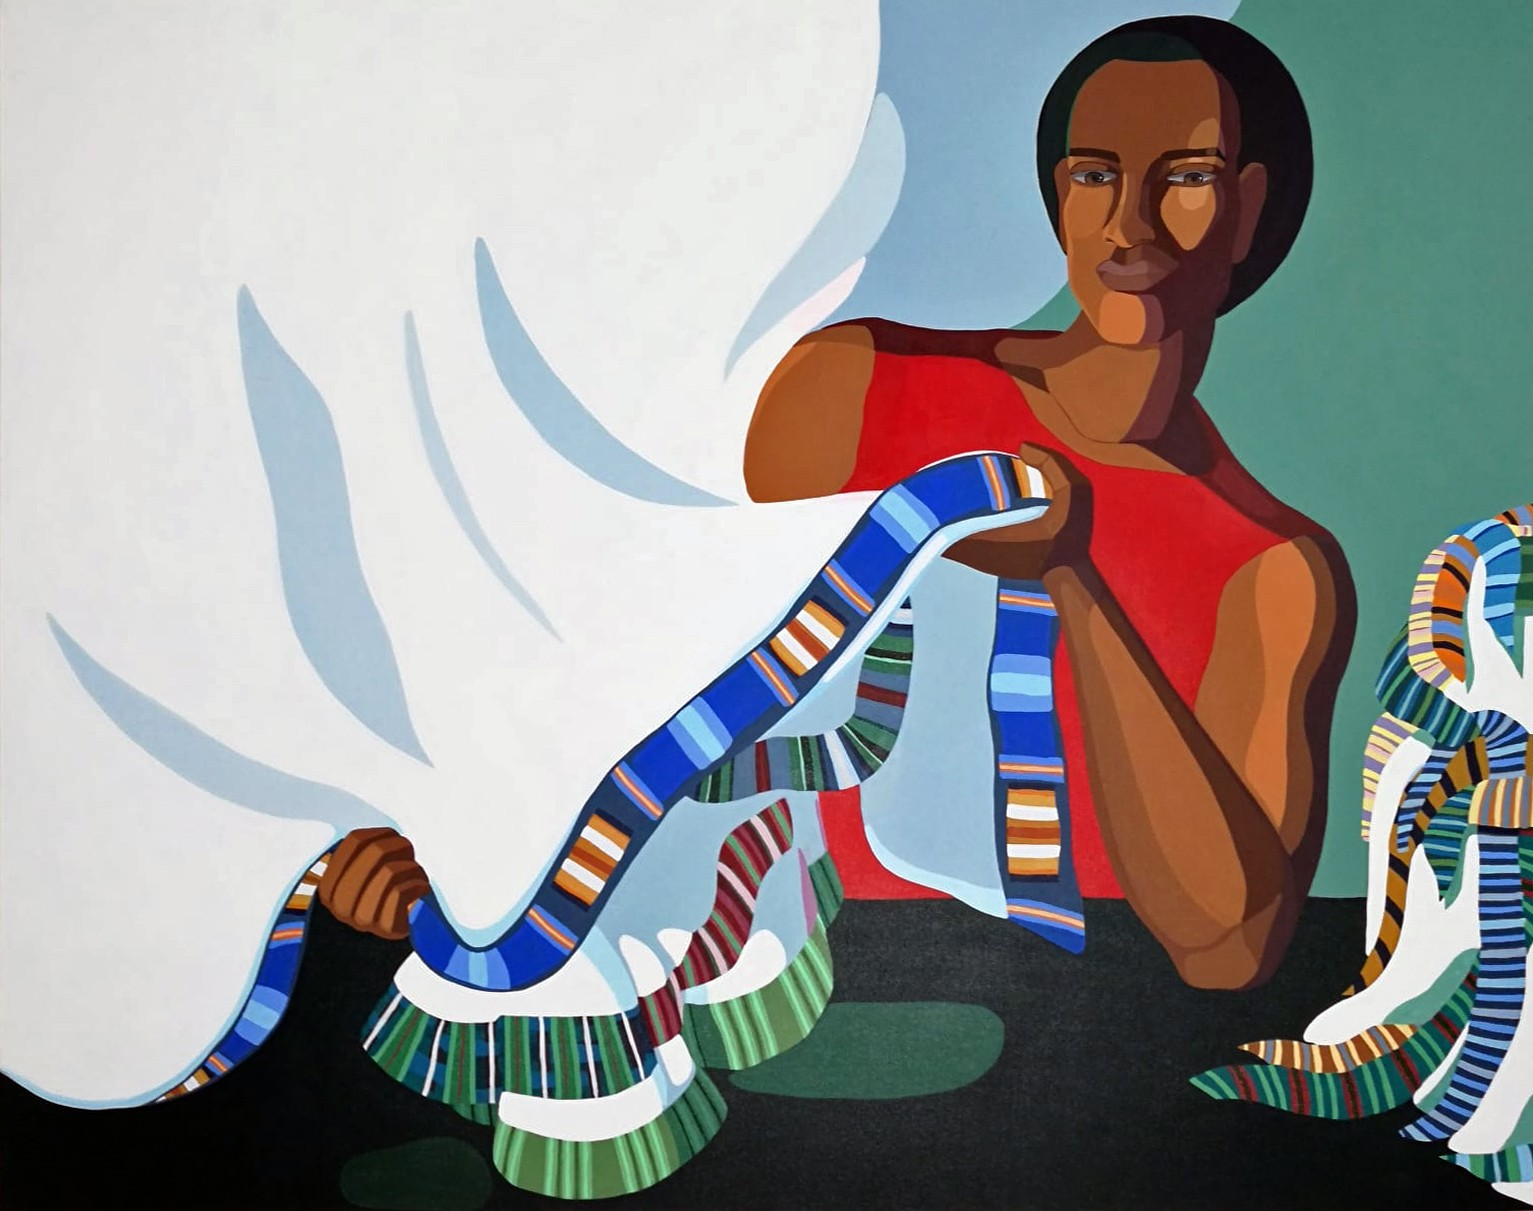 Nirit Takele, Fabcric Seller, 2018, Acrylic on canvas, 135x165 cm